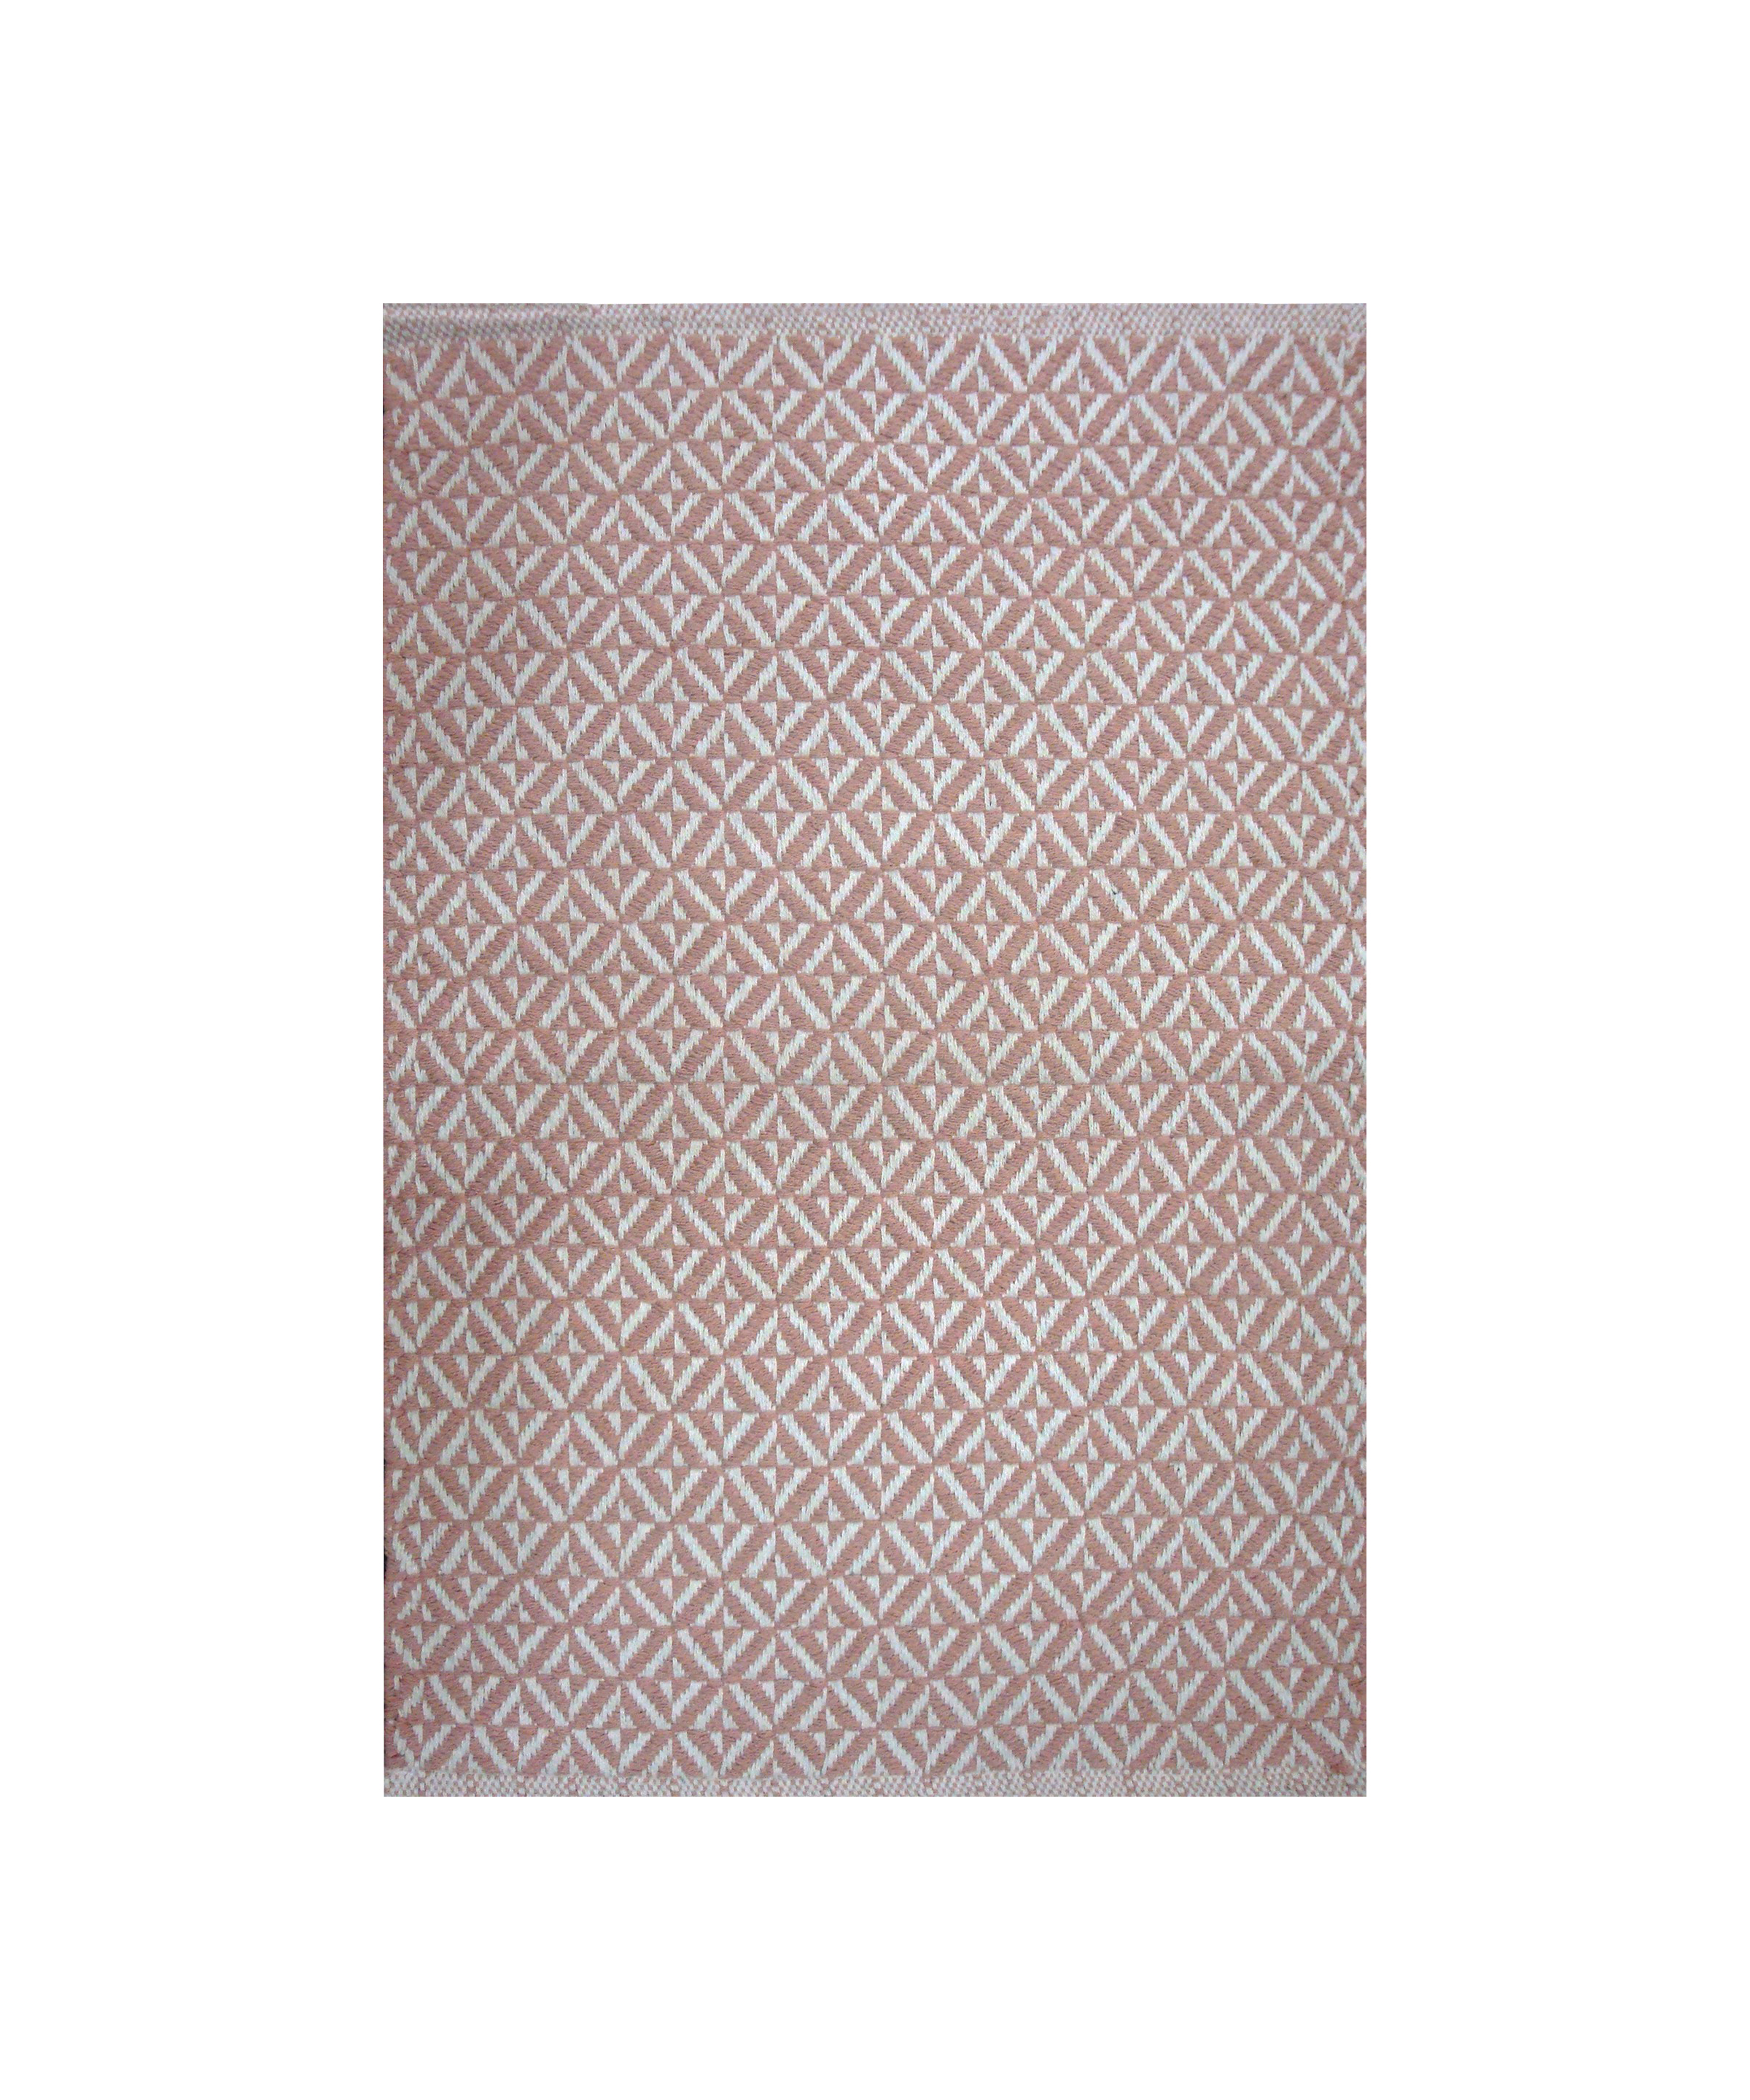 Dhurrie Bev Dusty Pink (Available Sizes: 2x3, 2x8, 3x5, 4x6, 5x8, 7x9), Amanda's House Of Elegance  ($27.95 – $286.95)